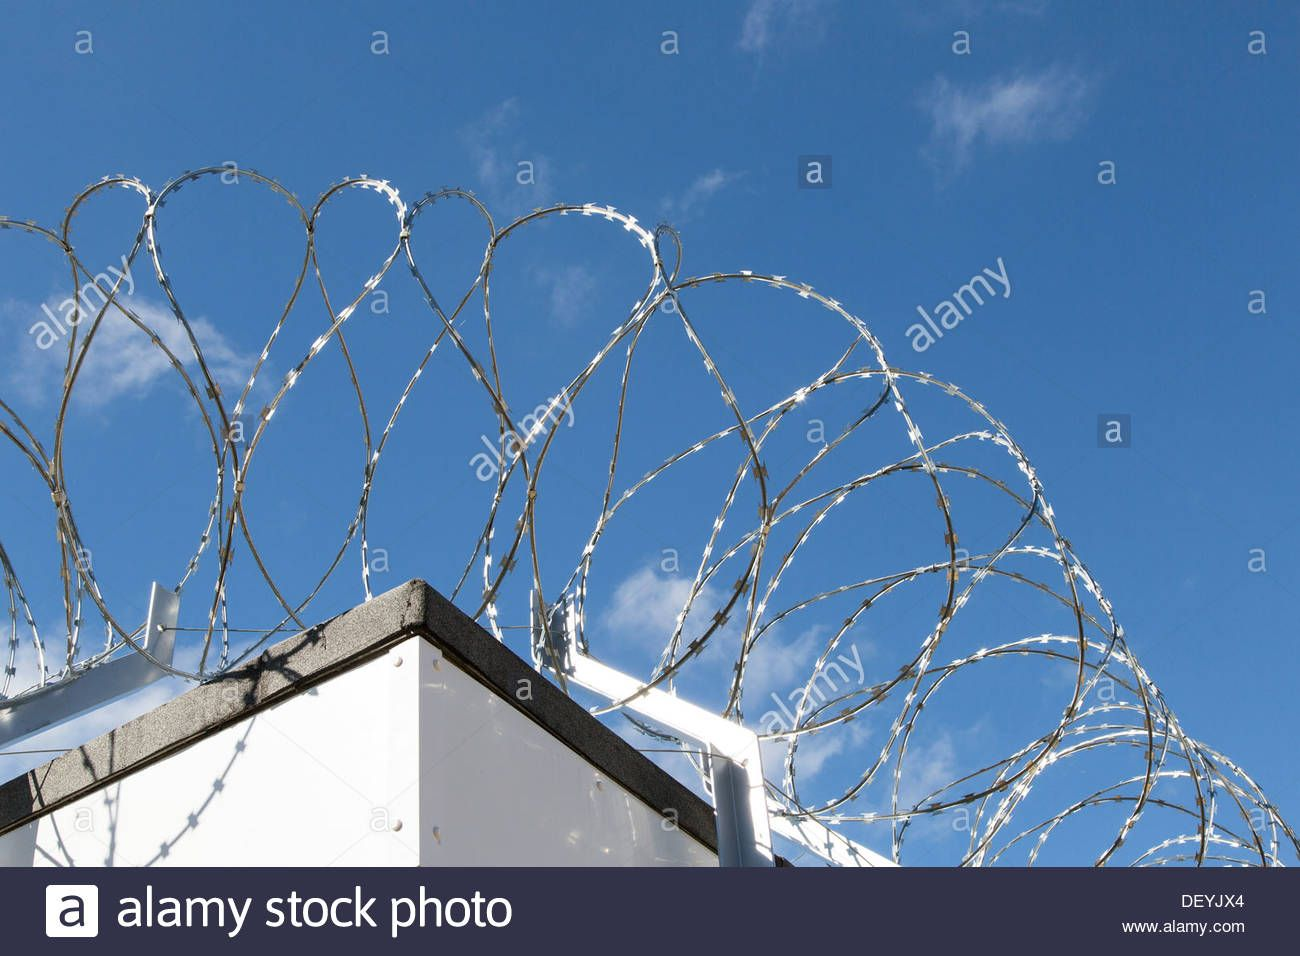 My new Pin razor-wire-barbed-wire-security-fence-high-security ...